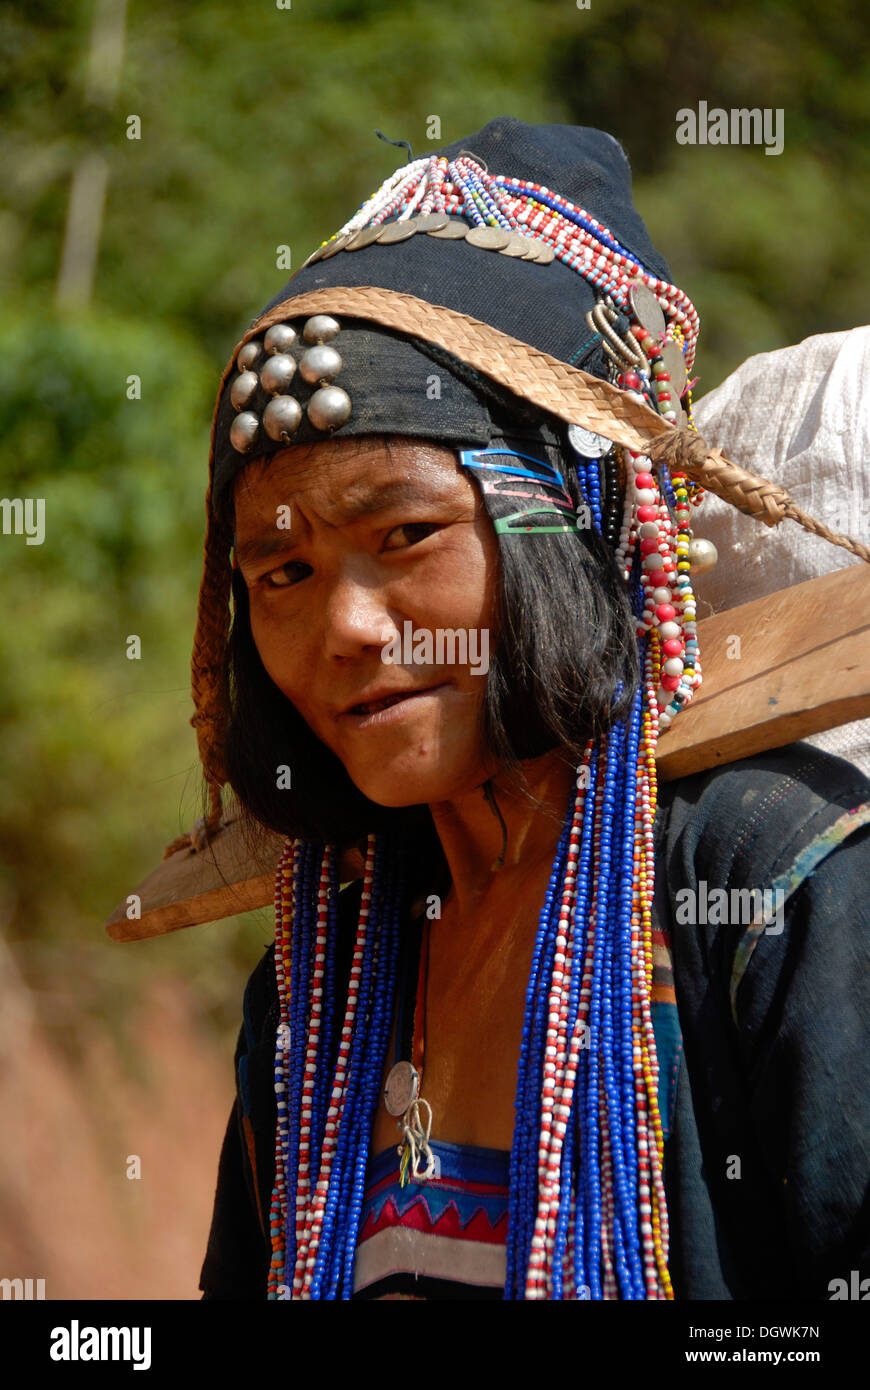 Poverty, ethnology, portrait, woman of the Akha Djepia ethnic group, traditional colorful clothes with indigo, headgear, Stock Photo